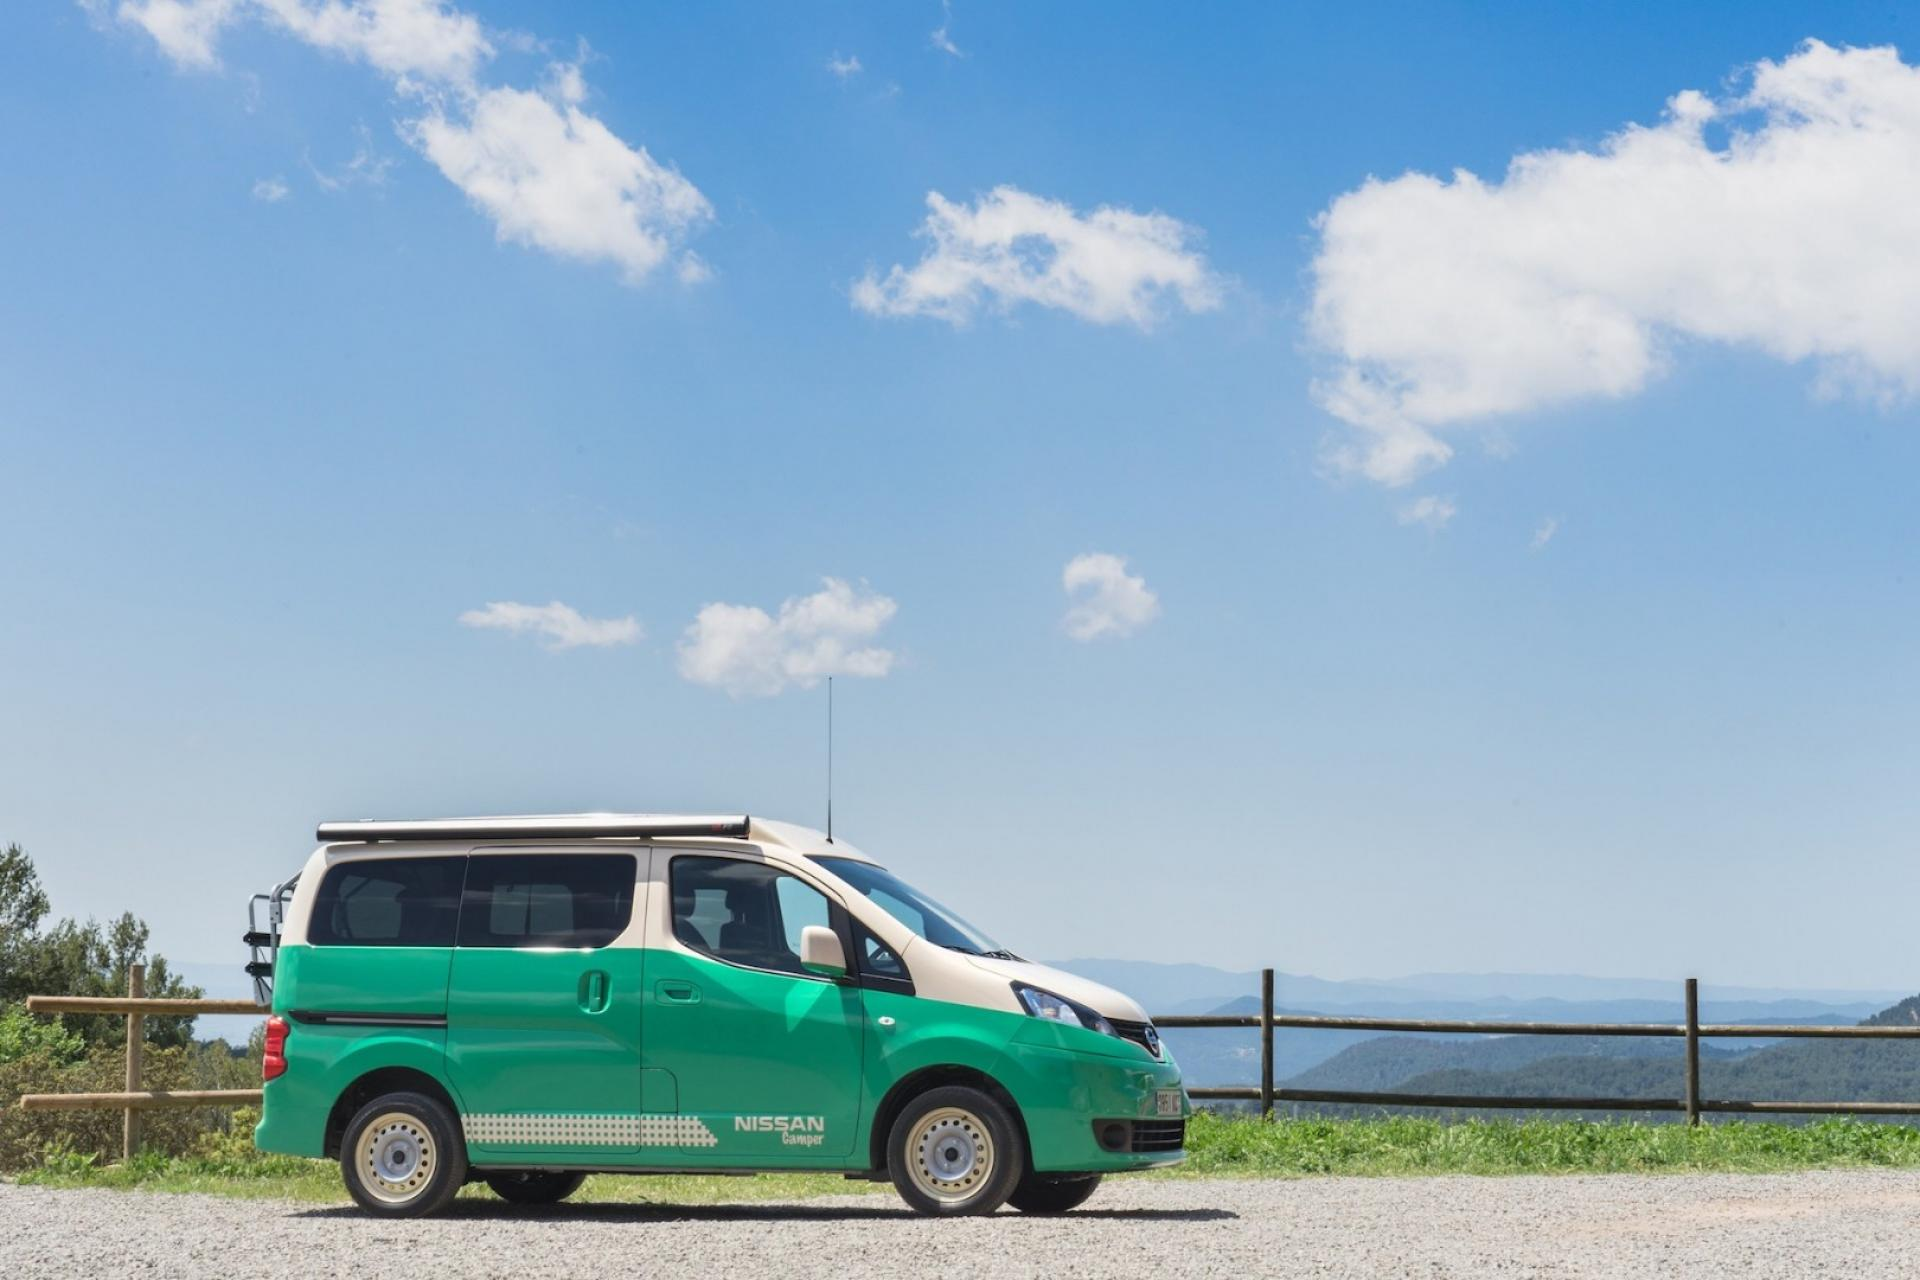 Elektryczny Nissan camper motor show madryt hellocamping news